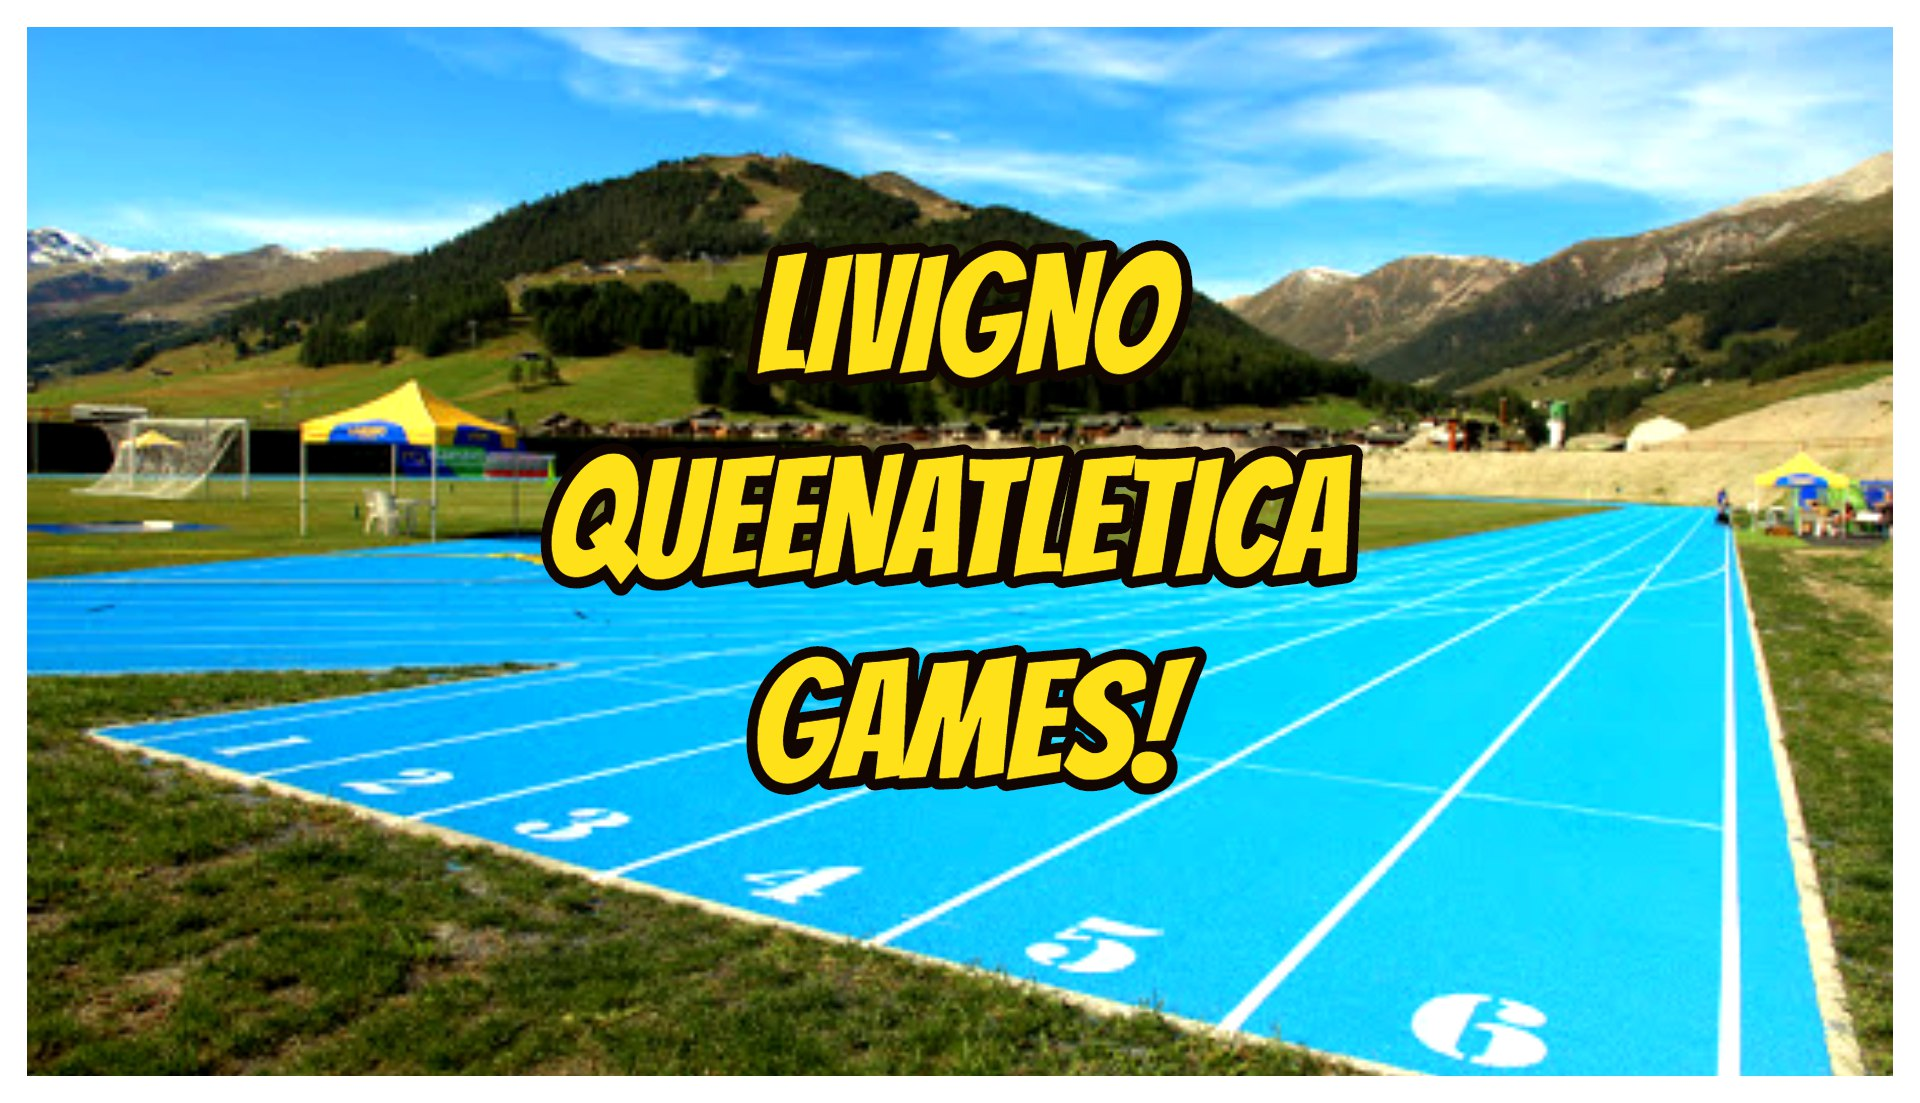 Livigno Queenatletica Games